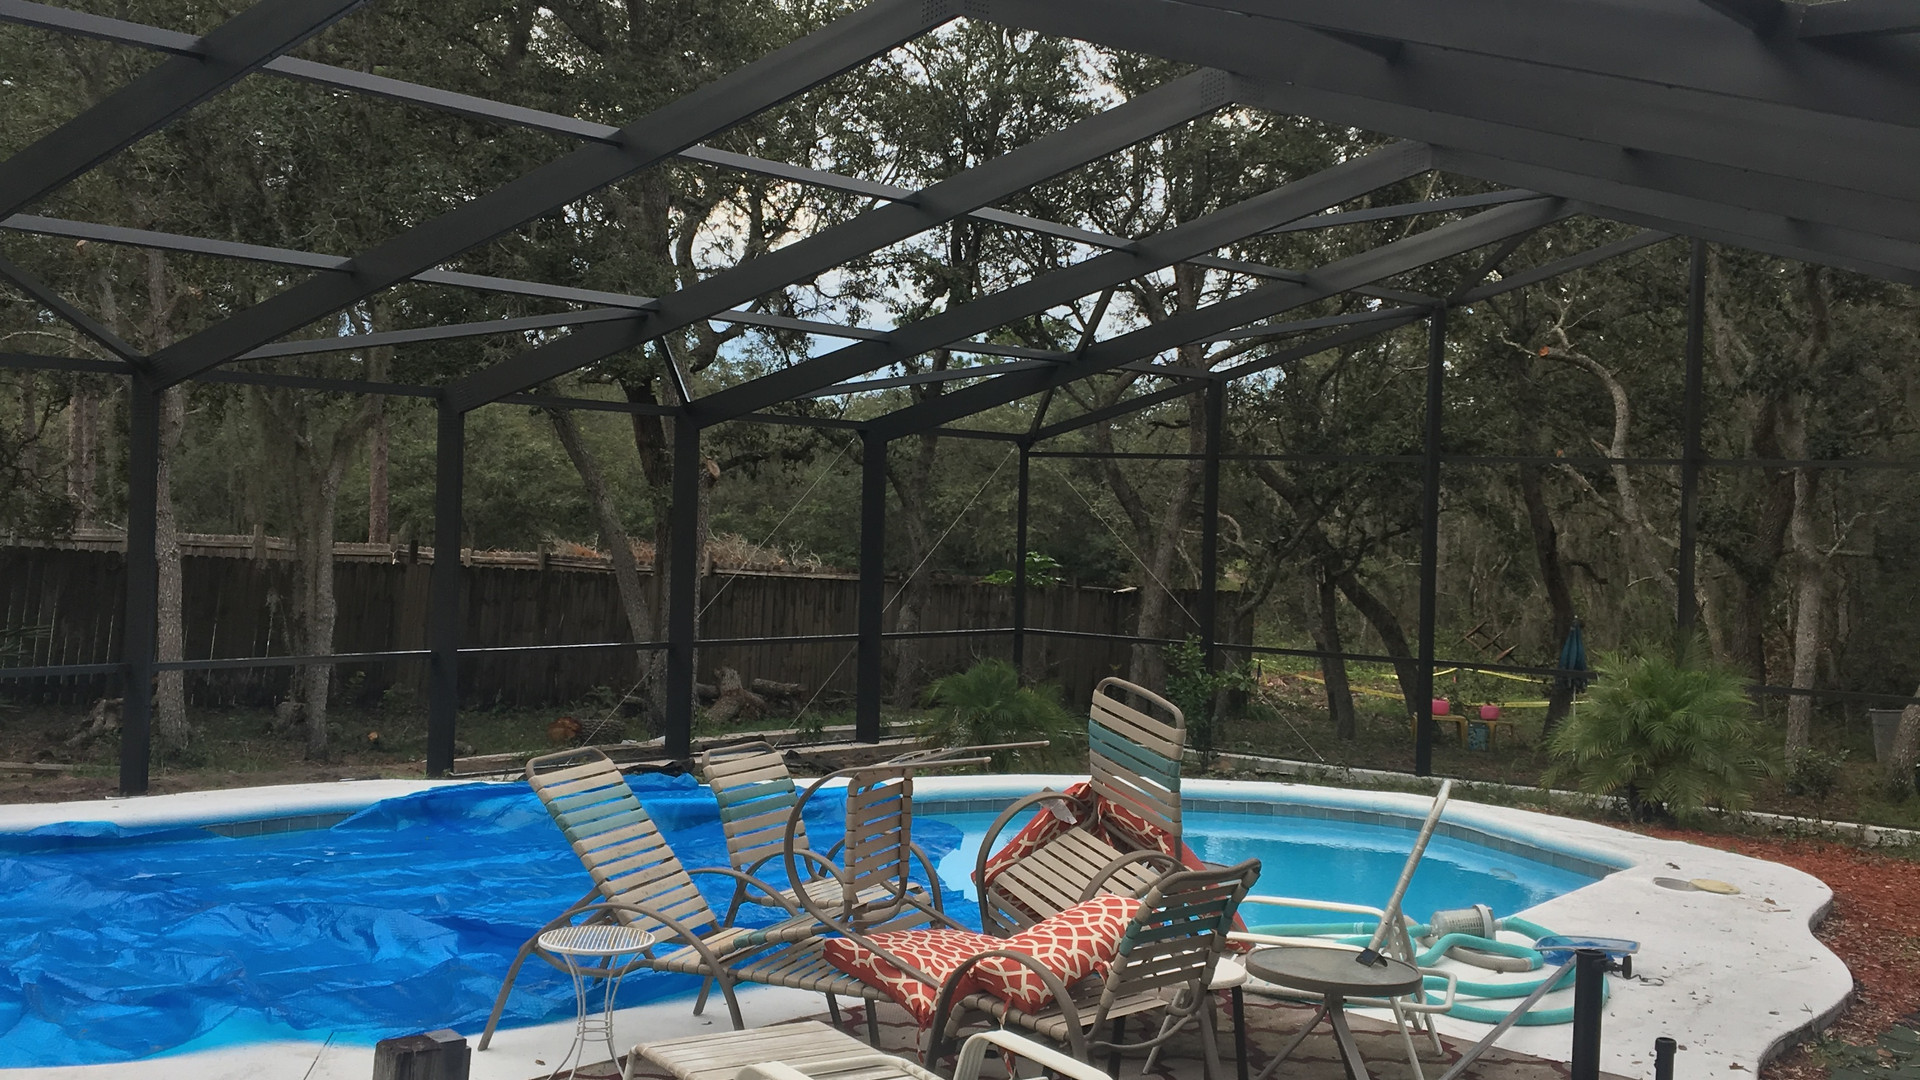 40x60 pool enclosure - poincian fl